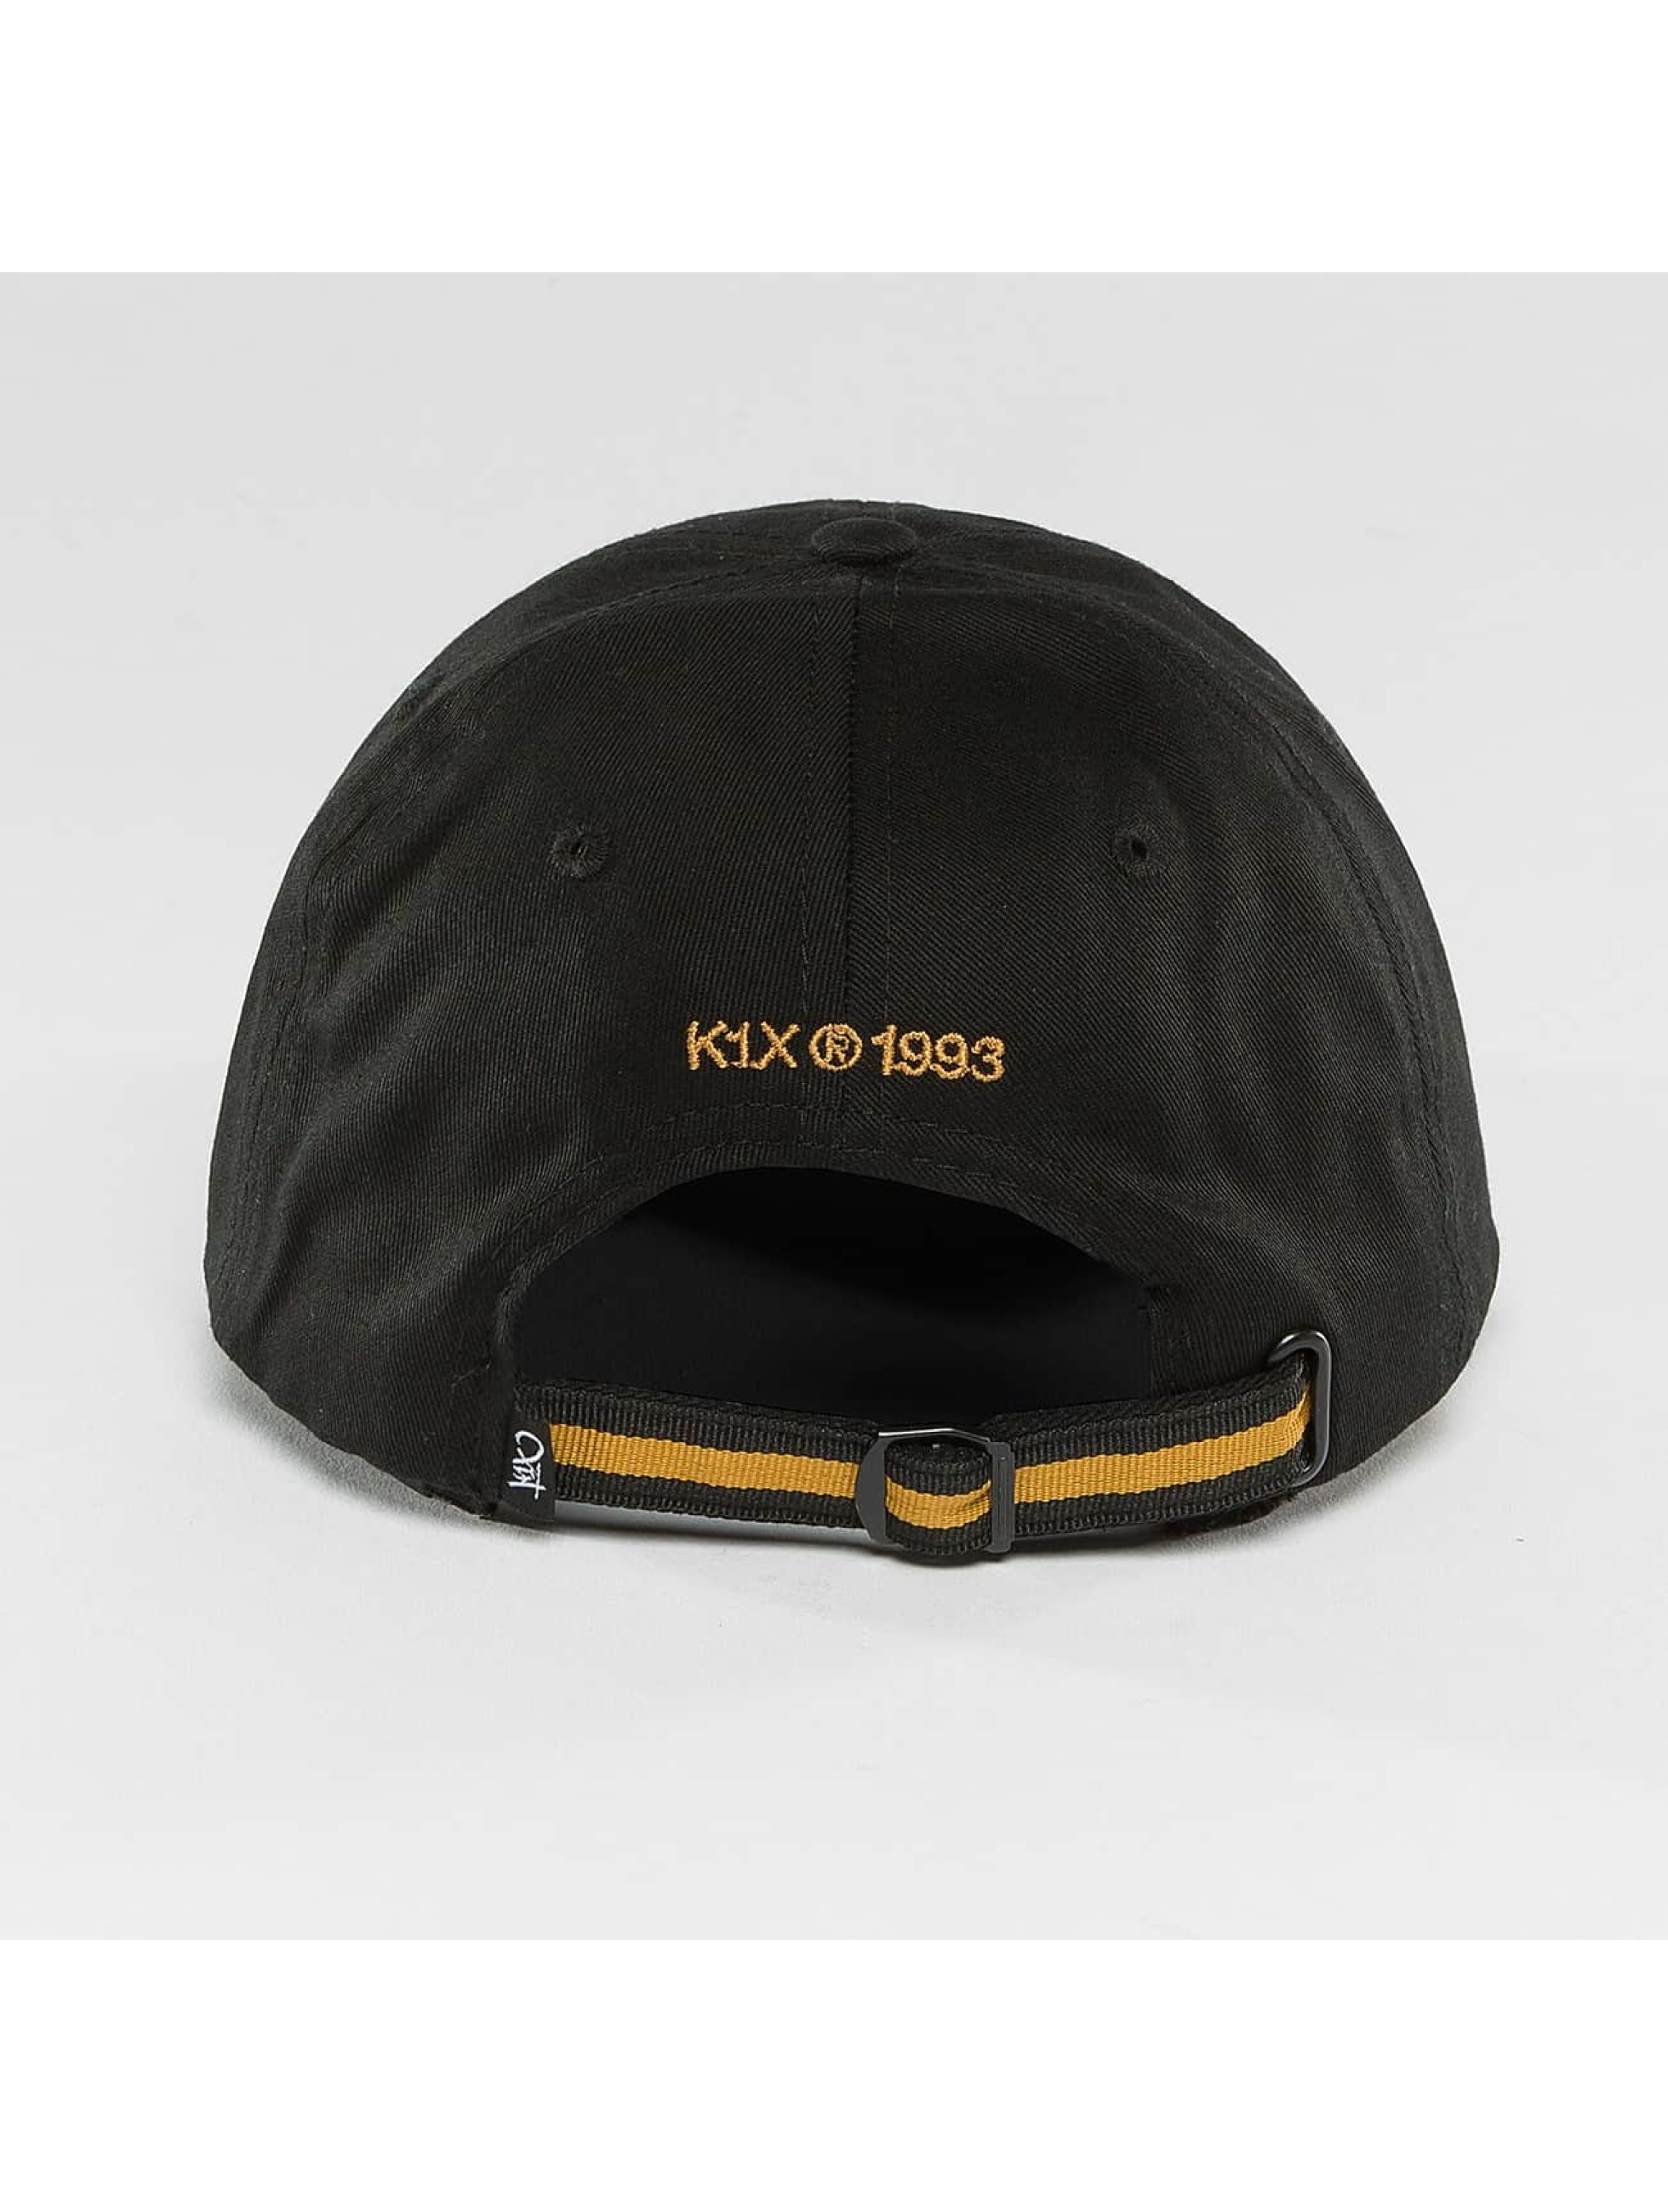 K1X Casquette Snapback & Strapback Play Hard Basketball Sports noir